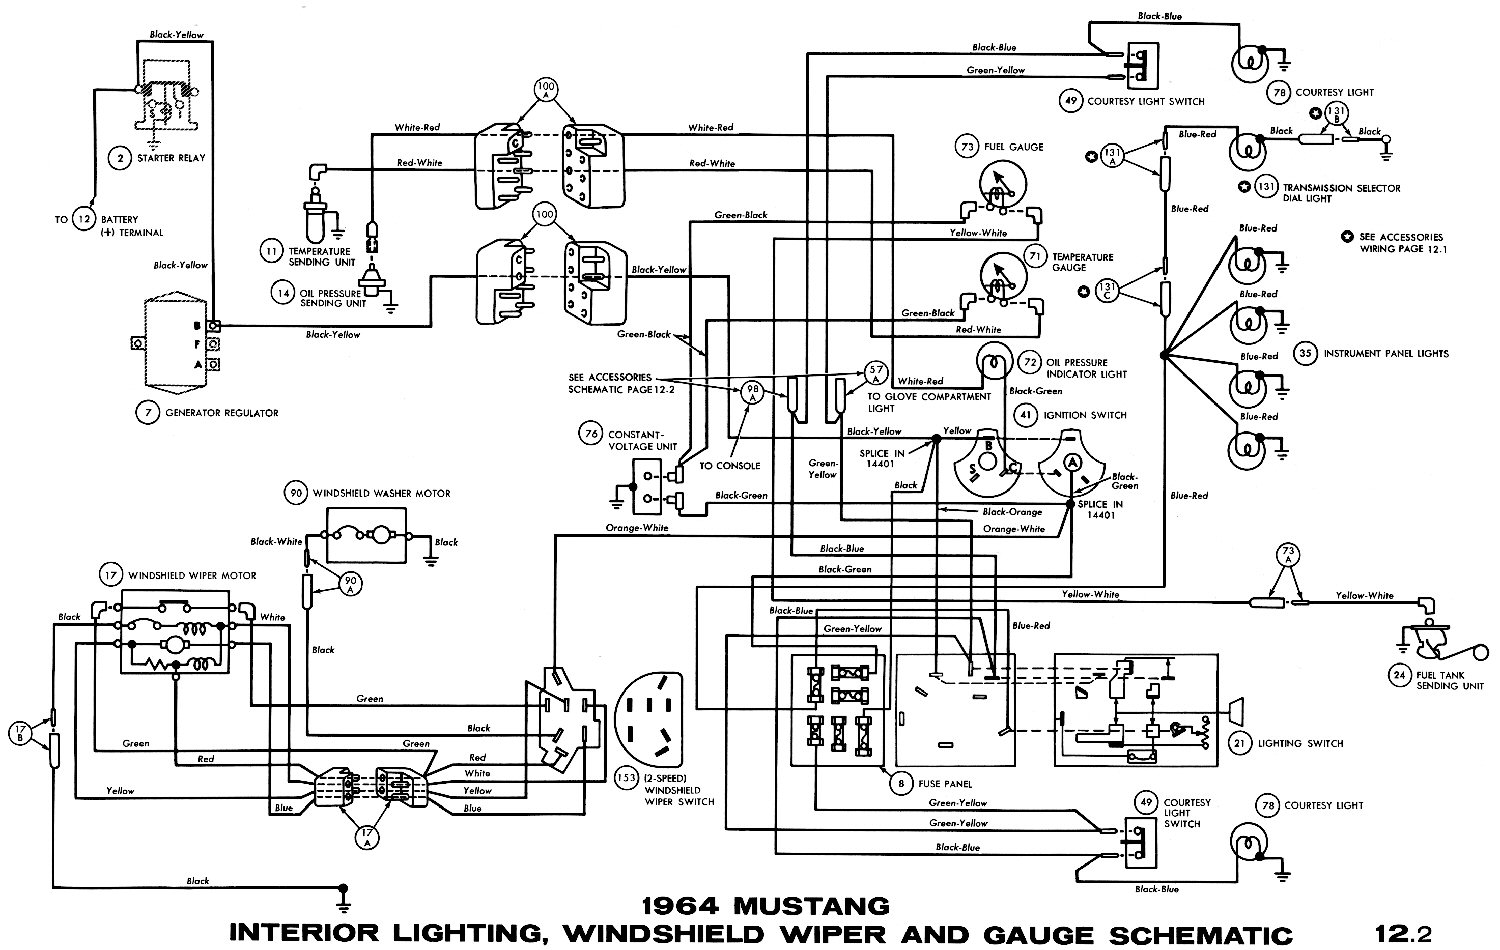 1995 Gmc Yukon Wiring Diagram 1996 Gmc Yukon Wiring Diagram Wiring Regarding 2001 Chevy Silverado Parts Diagram together with Chevrolet Corvette 5 7 1980 Specs And Images in addition Ford F150 F250 How To Replace Serpentine Belt 359906 likewise Viewtopic besides F150 F250 Why Wont My Transmission Shift 356885. on ford 4 6 v8 engine specs